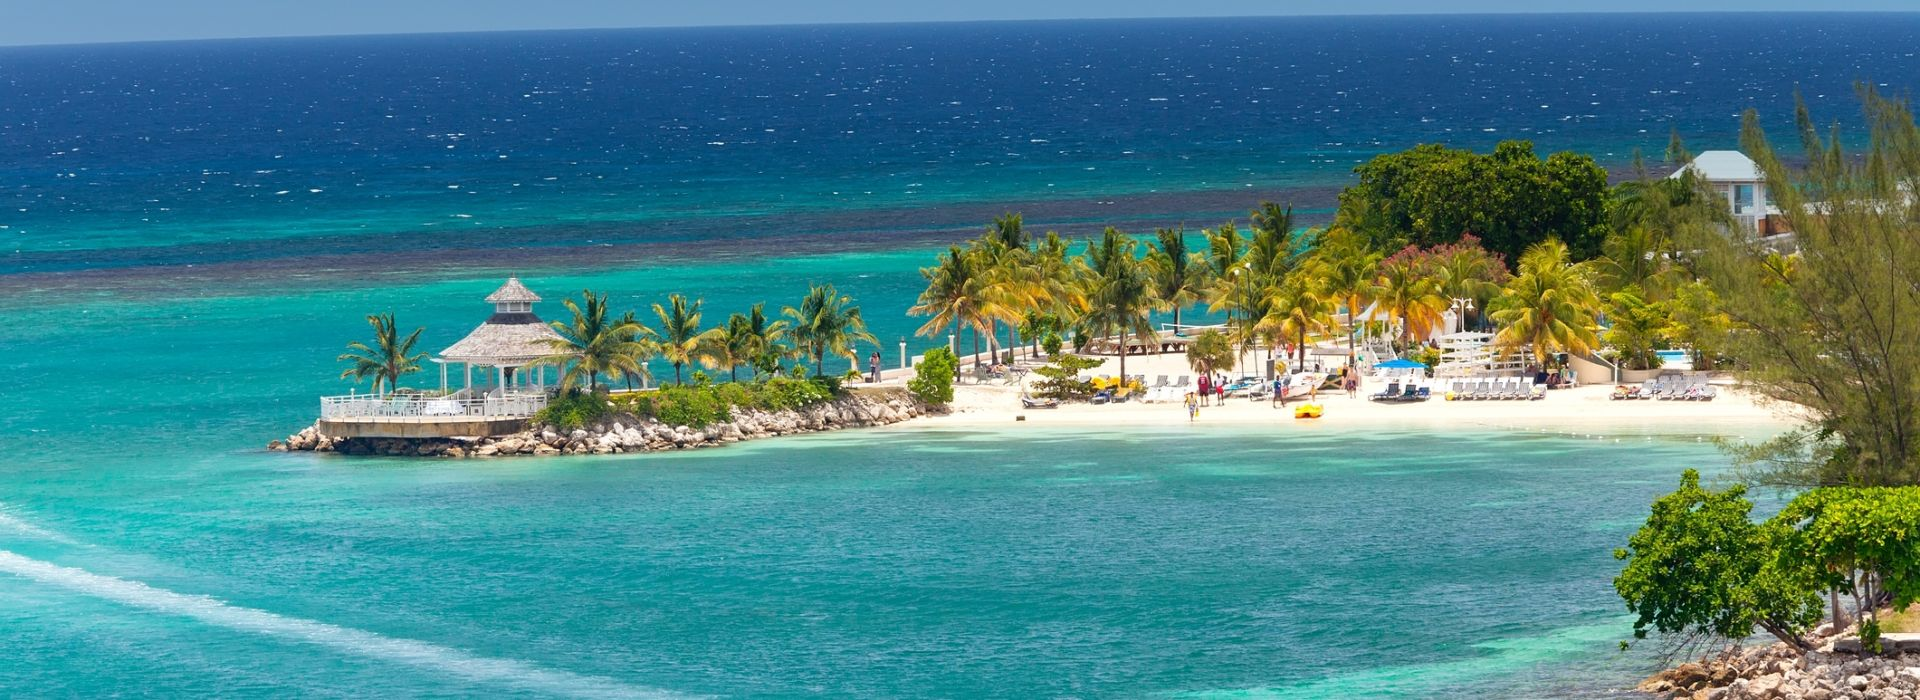 Travelling Jamaica - Tours and Holiday Packages in Jamaica